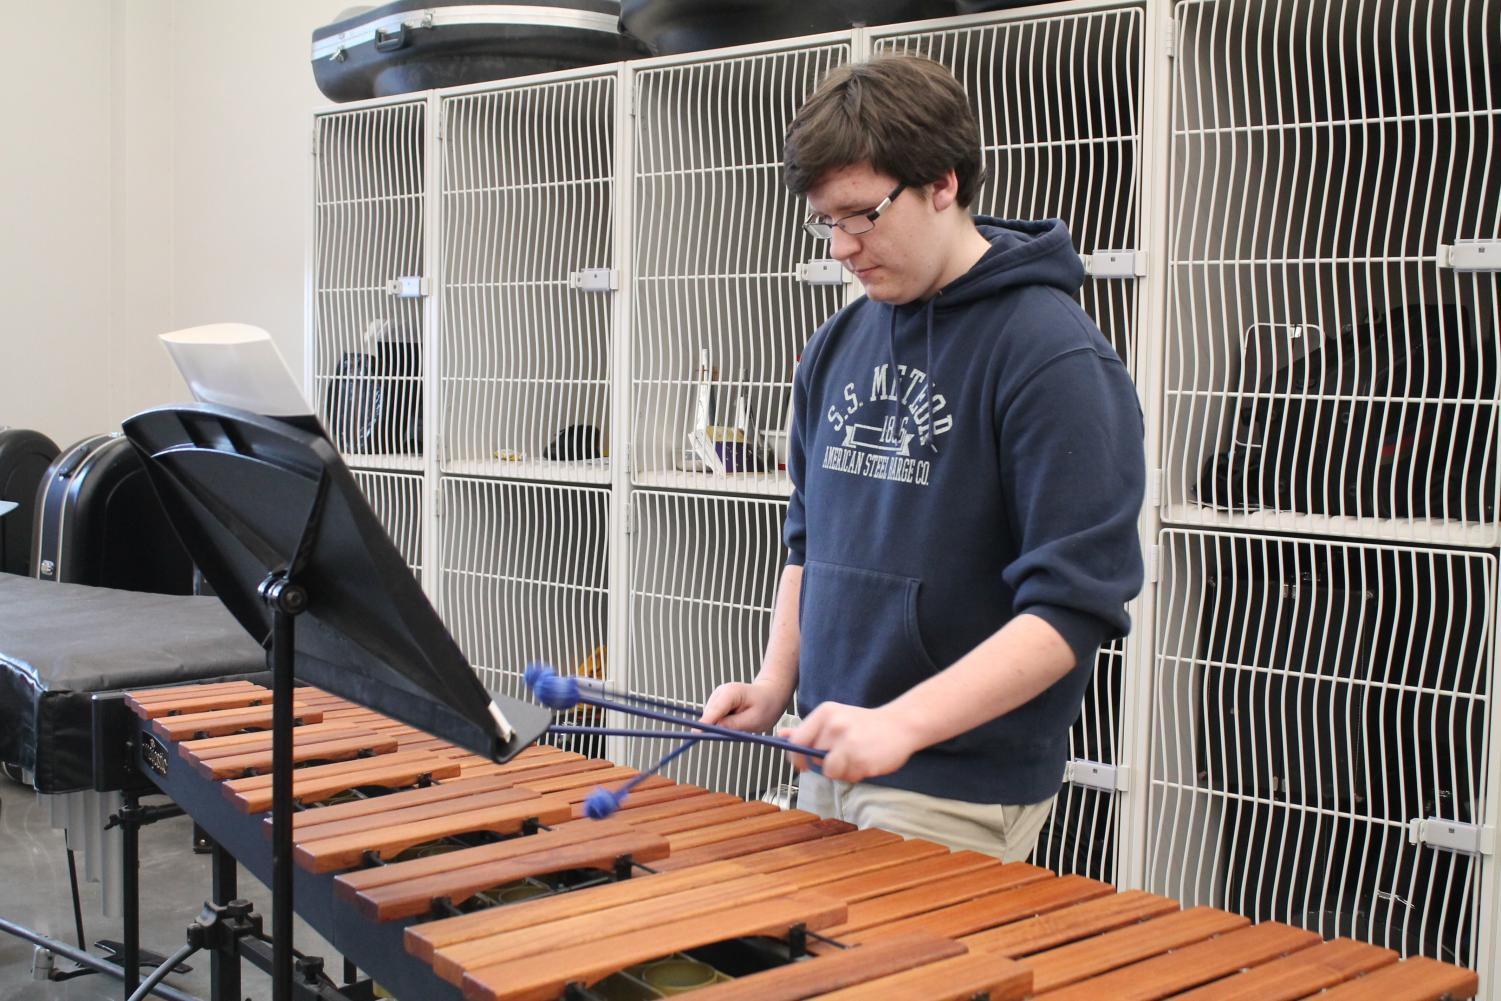 Senior Jaxon Hoffmann practices on the marimbas in room 1440 on Nov. 12.